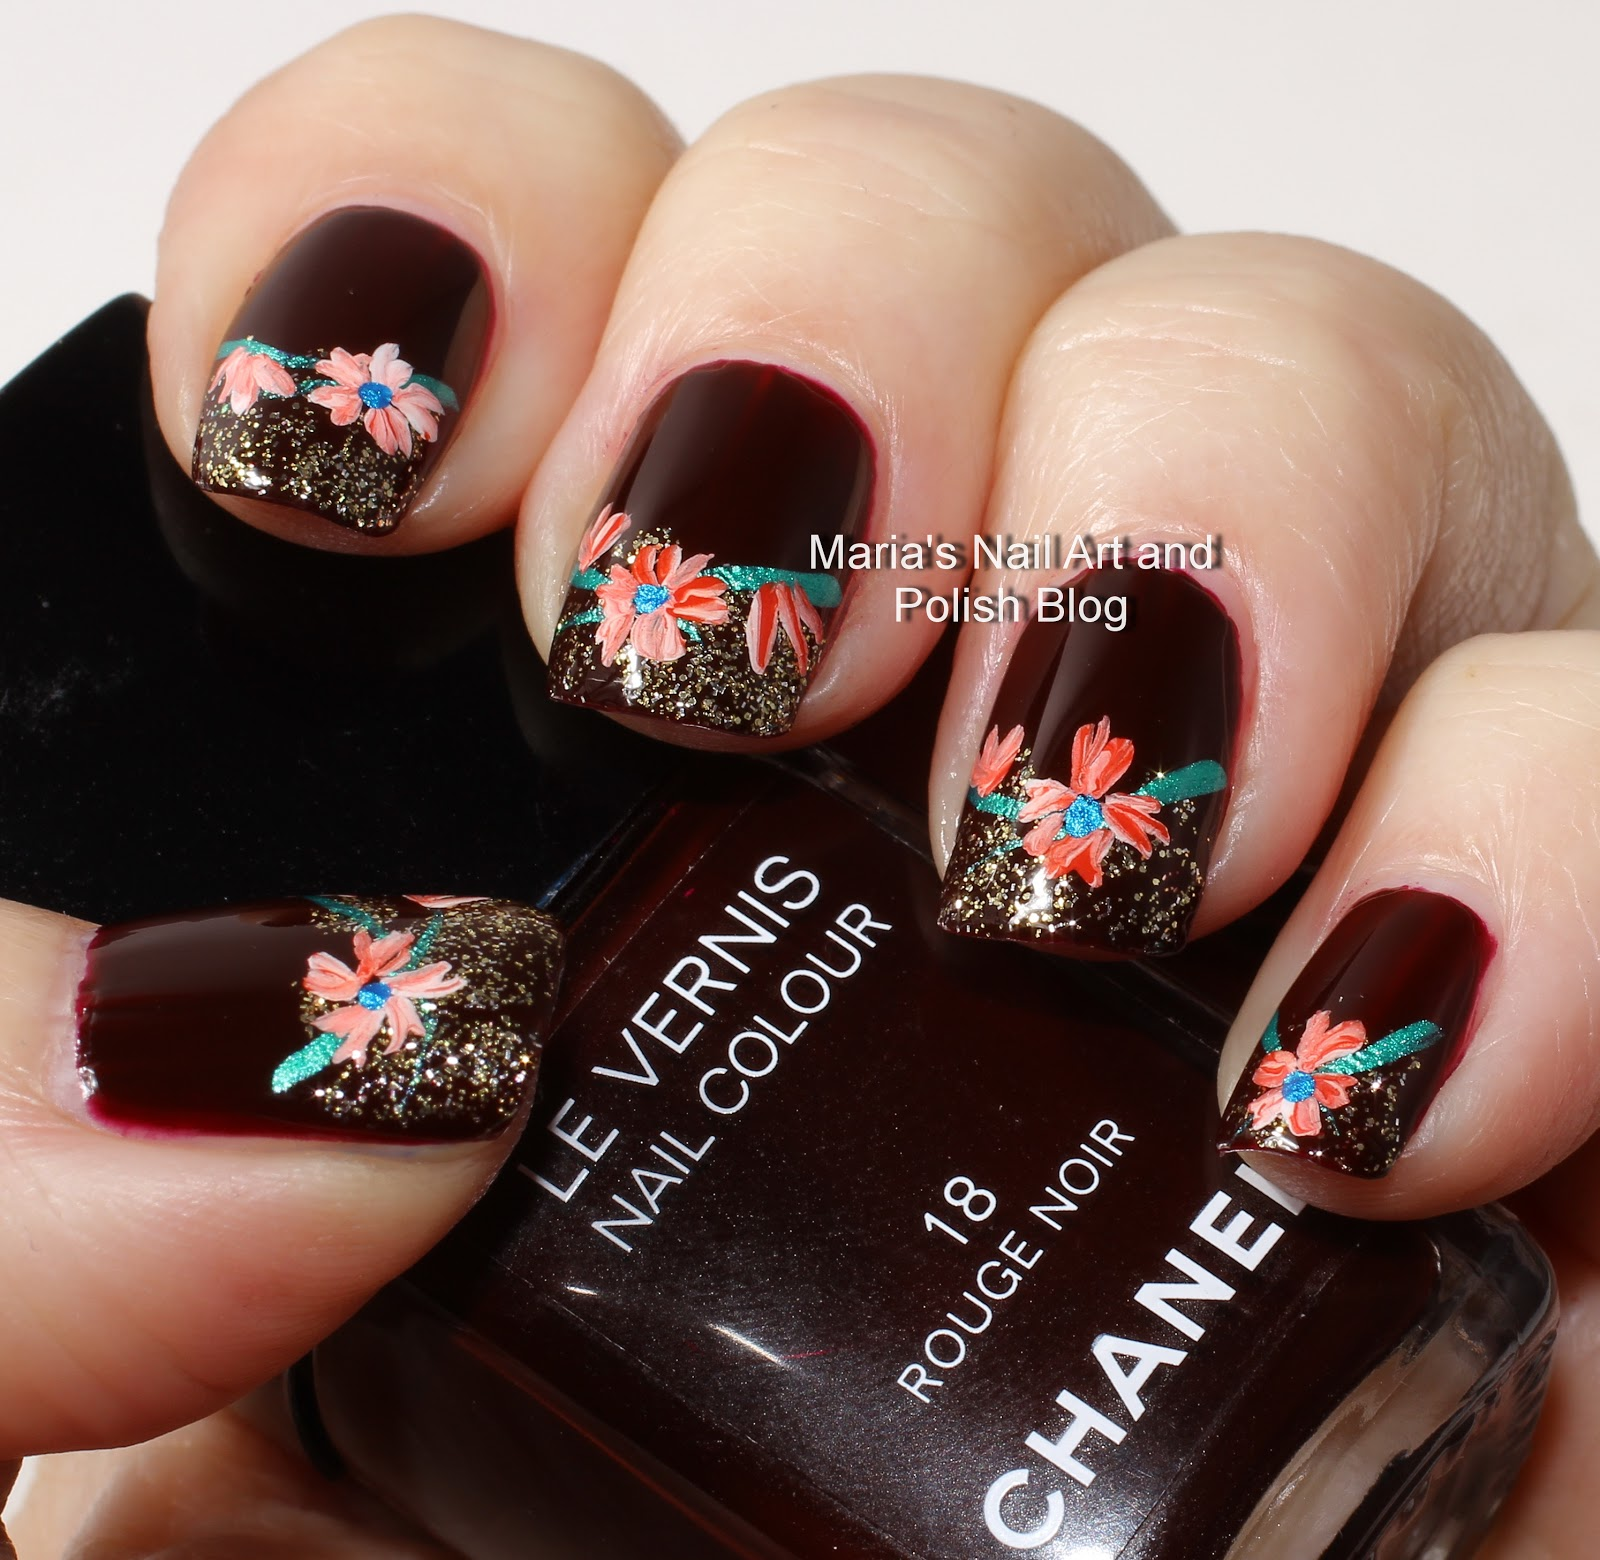 Marias Nail Art And Polish Blog Subtle Floral Nail Art On: Marias Nail Art And Polish Blog: Rouge Noir With Flowers